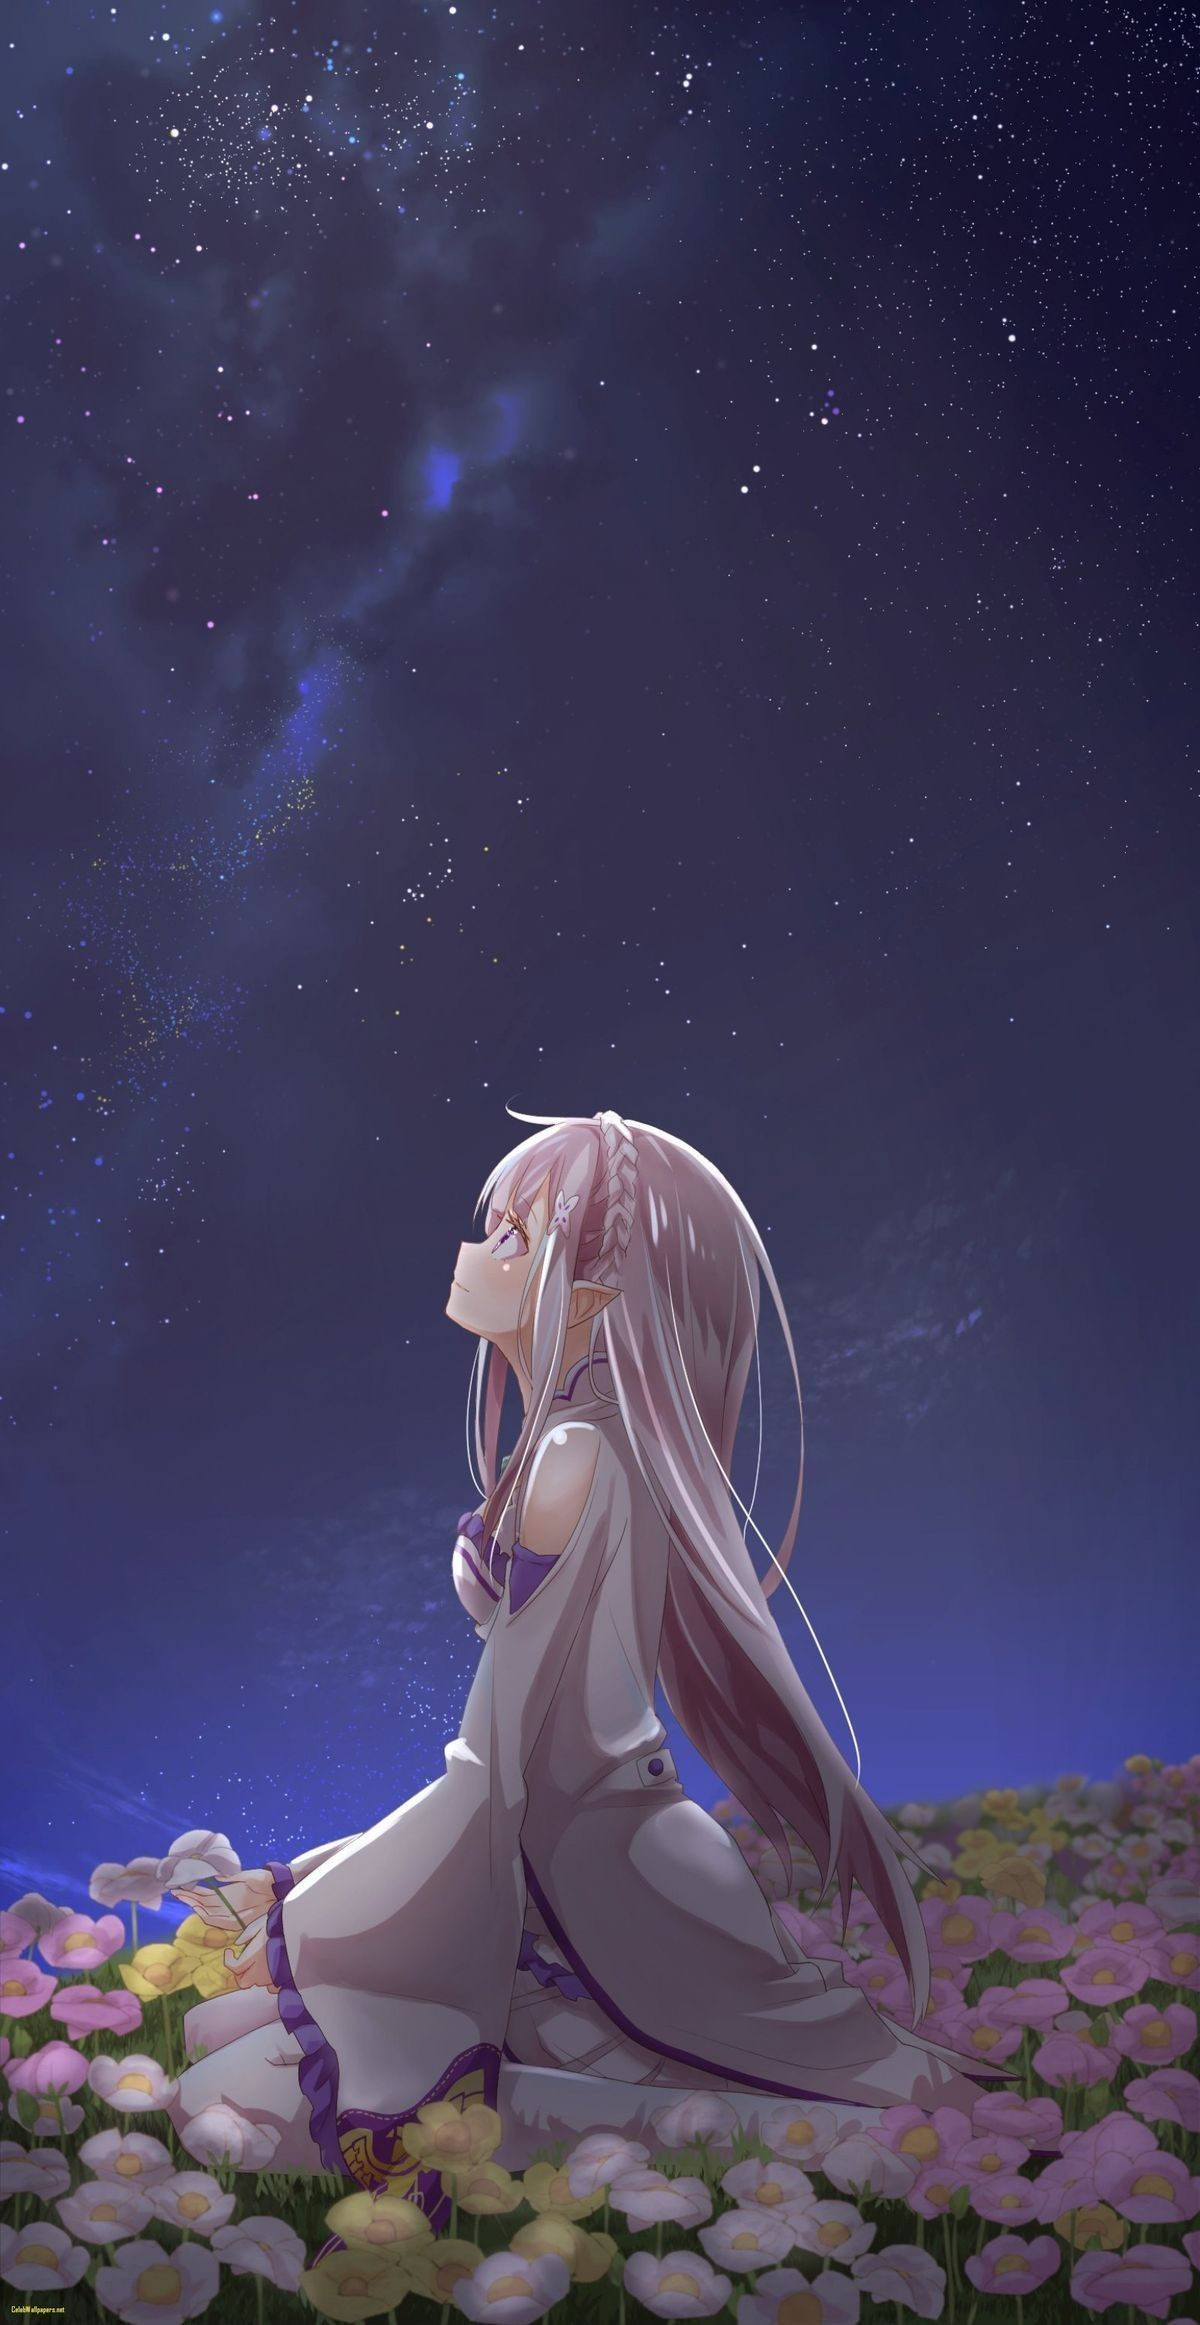 Emilia Anime background, Hd anime wallpapers, Anime